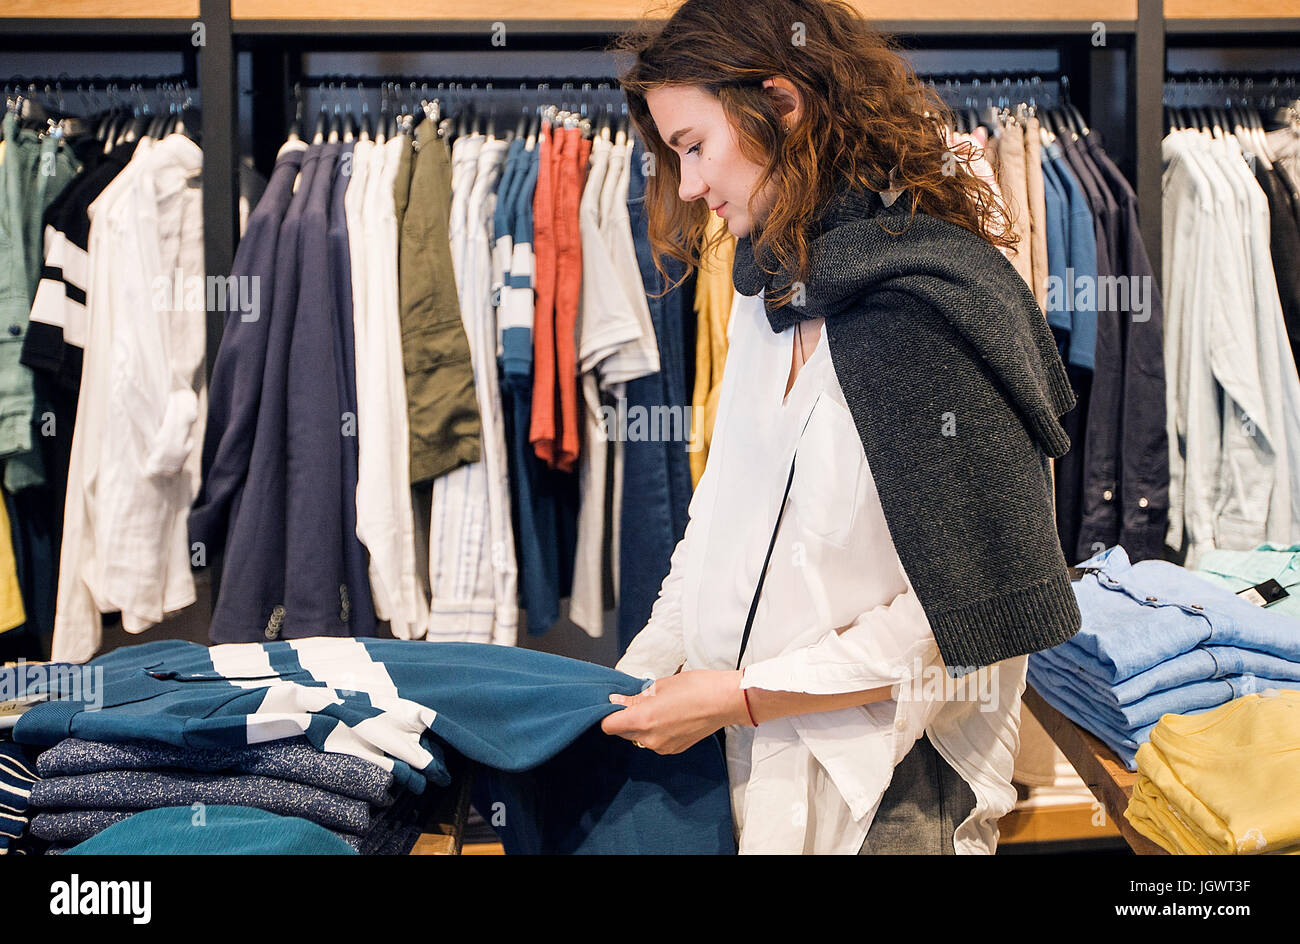 Shopper making decision in clothes shop - Stock Image